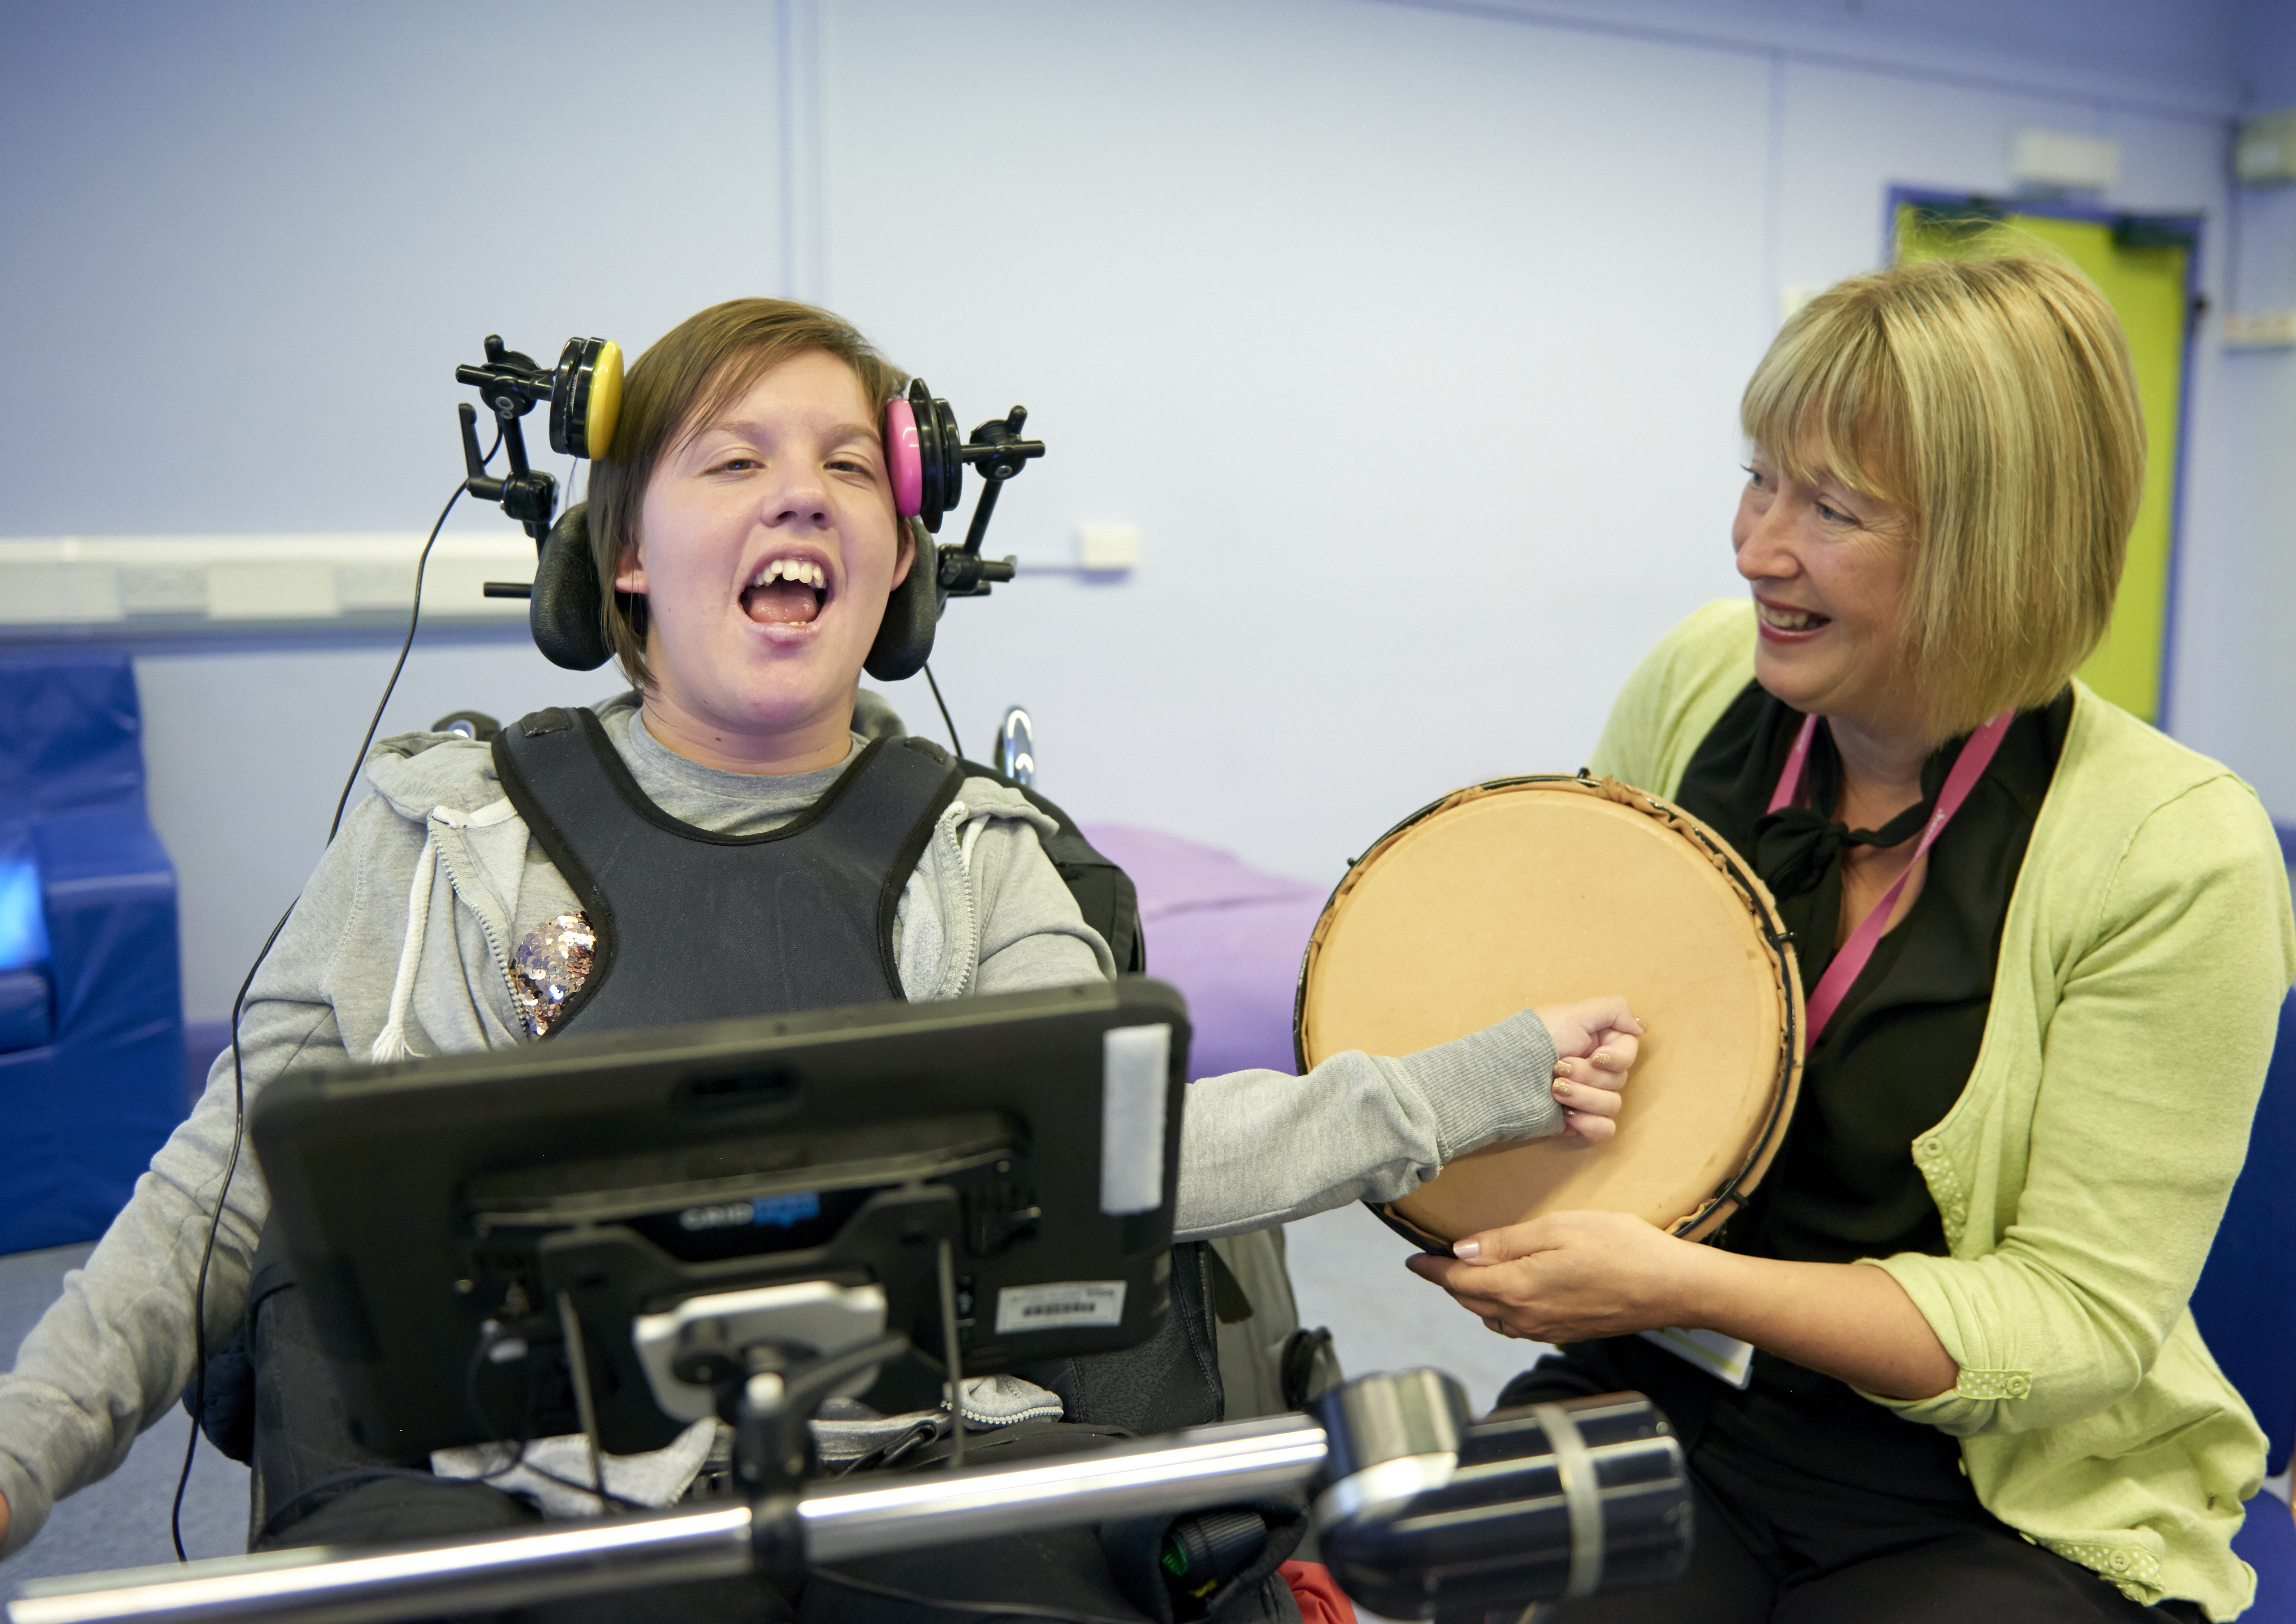 Student Mary Hinde banging on a tambourine in music class